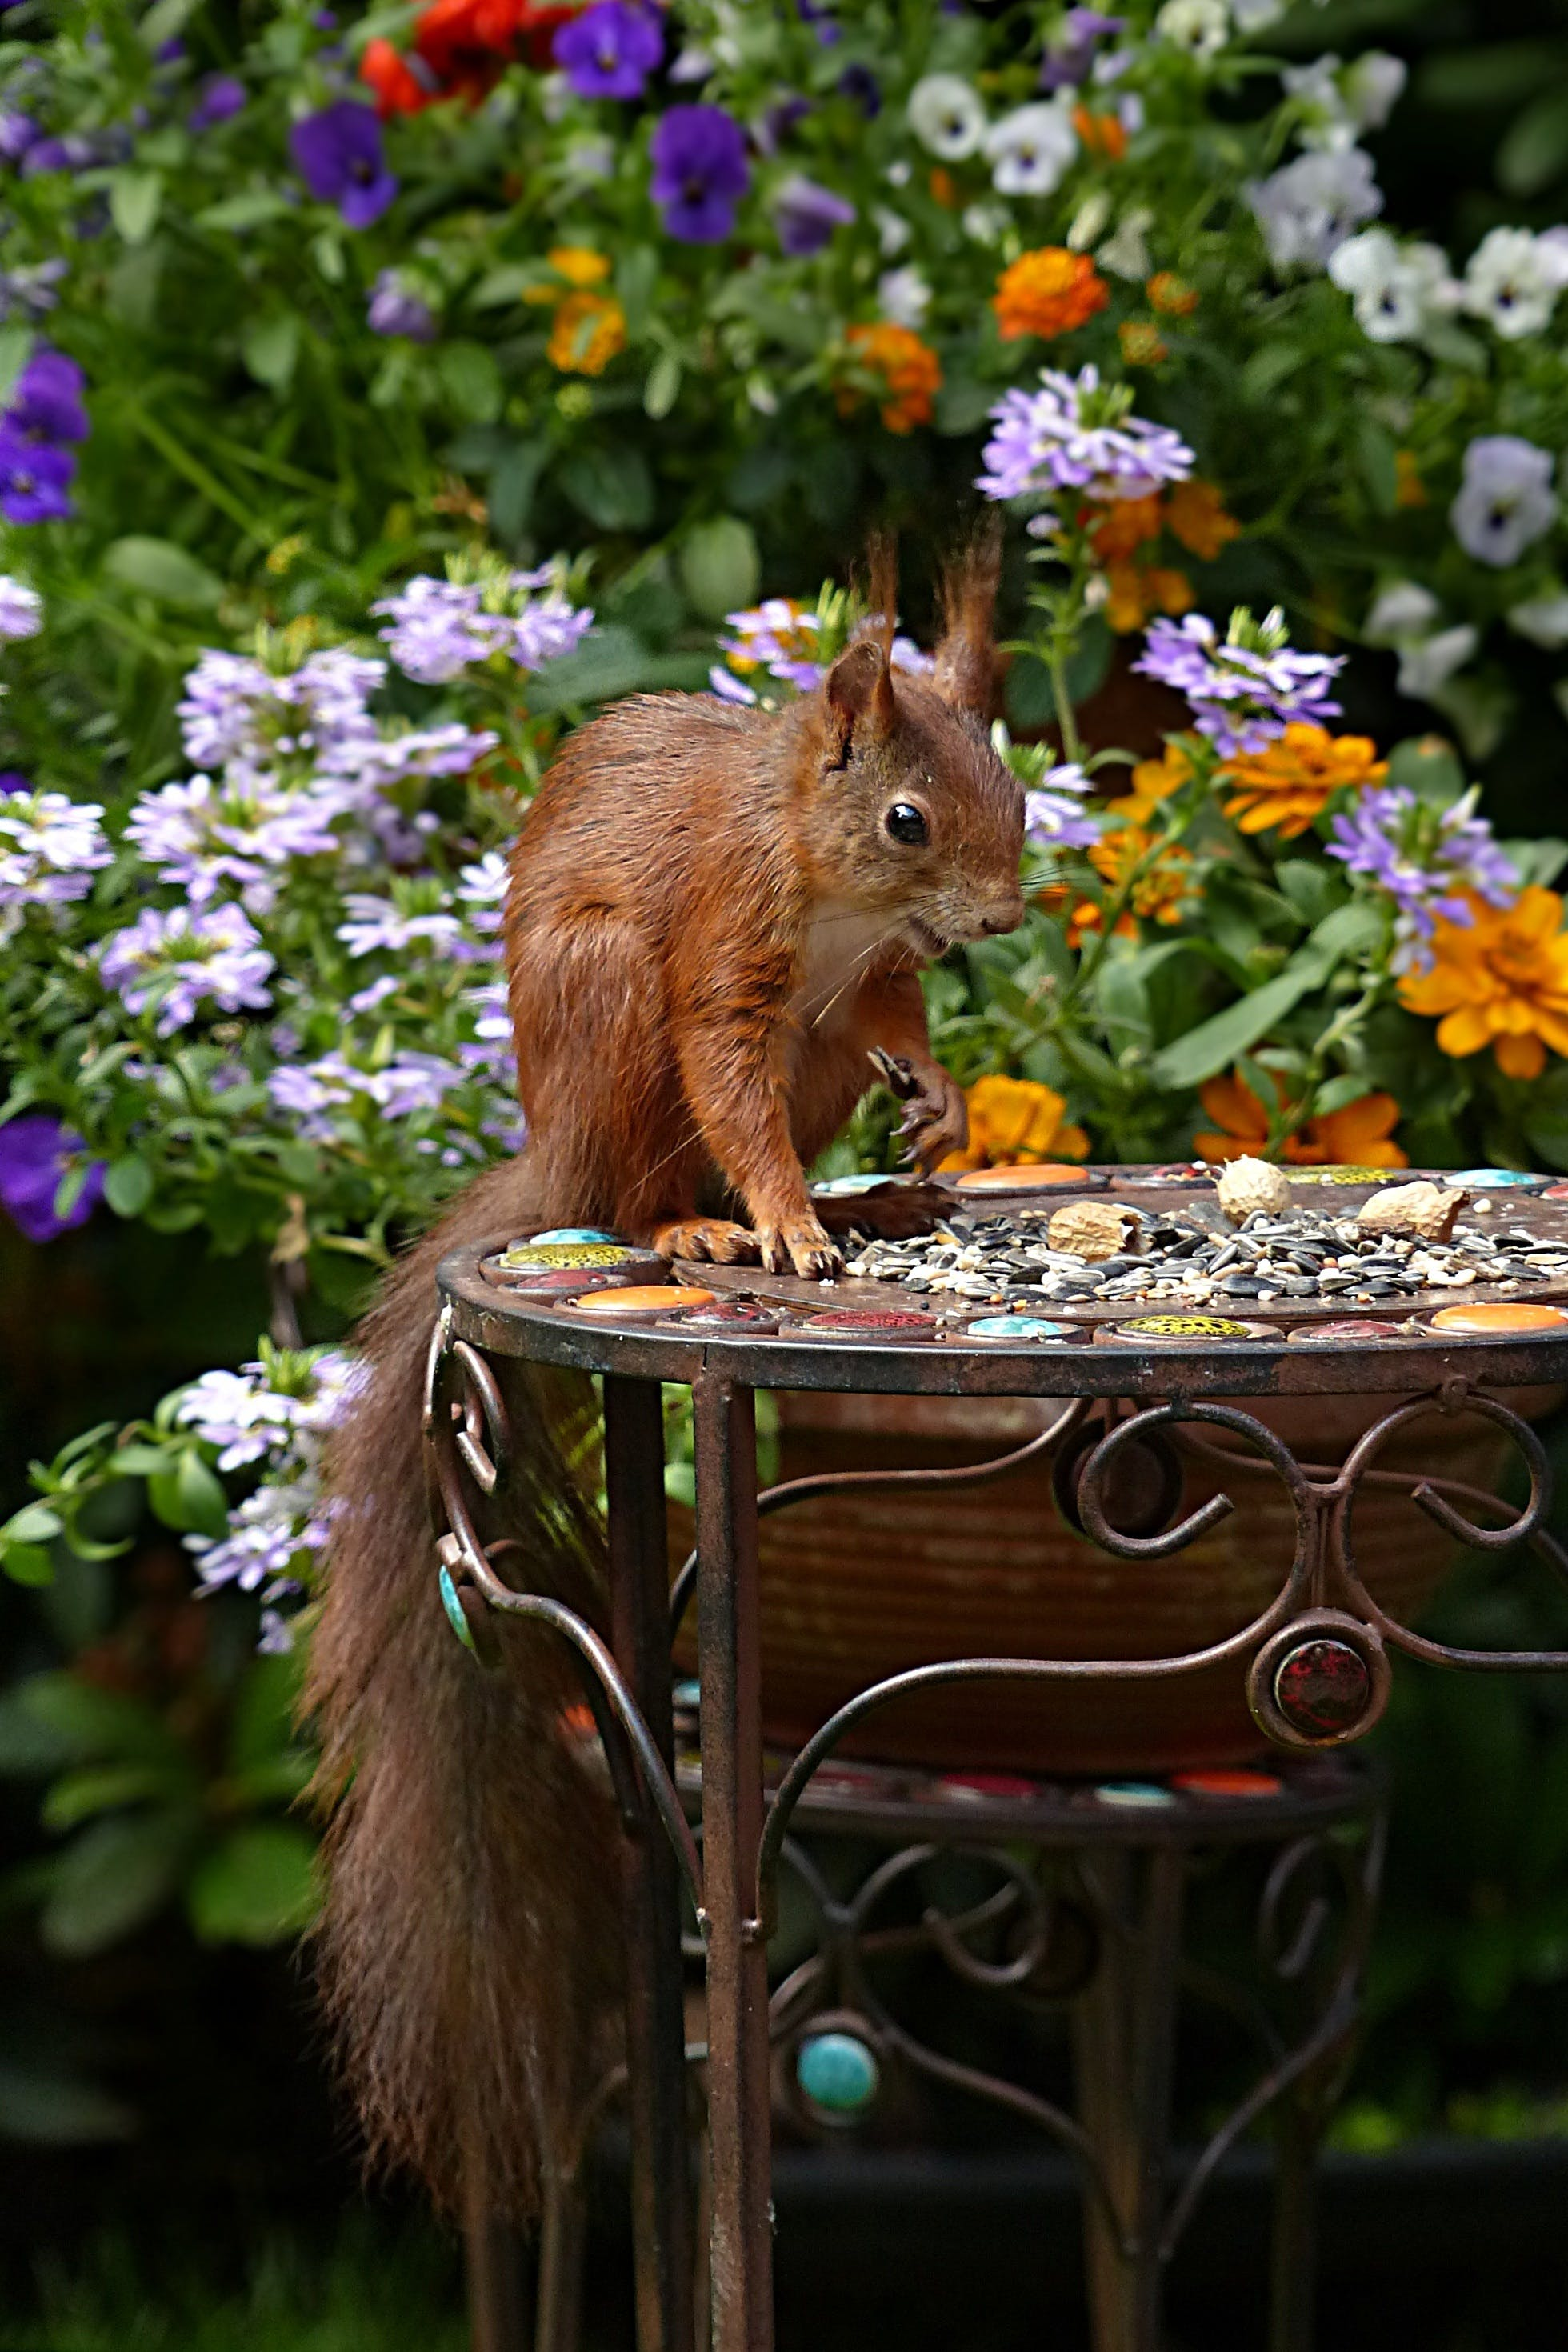 Brown Squirrel in Black Metal Round Table during Daytime